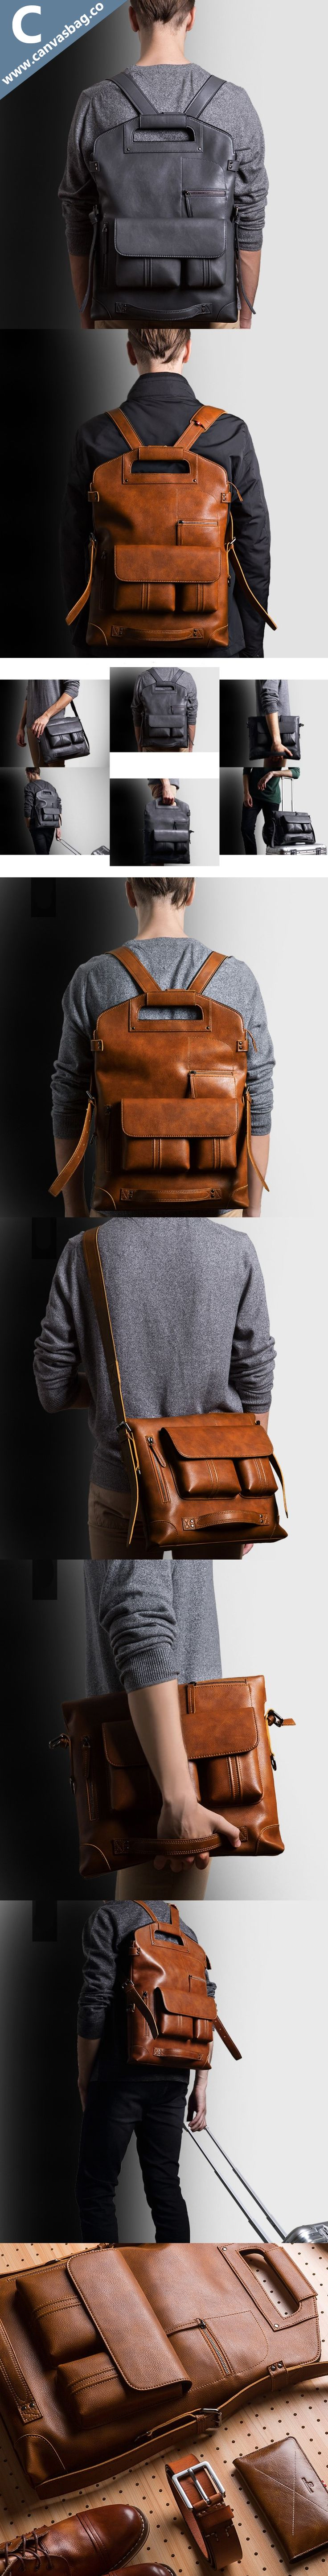 679c4436d5 Leather-Convertible-Backpack-Canvas-Bag-Leather-Bag-CanvasBag.